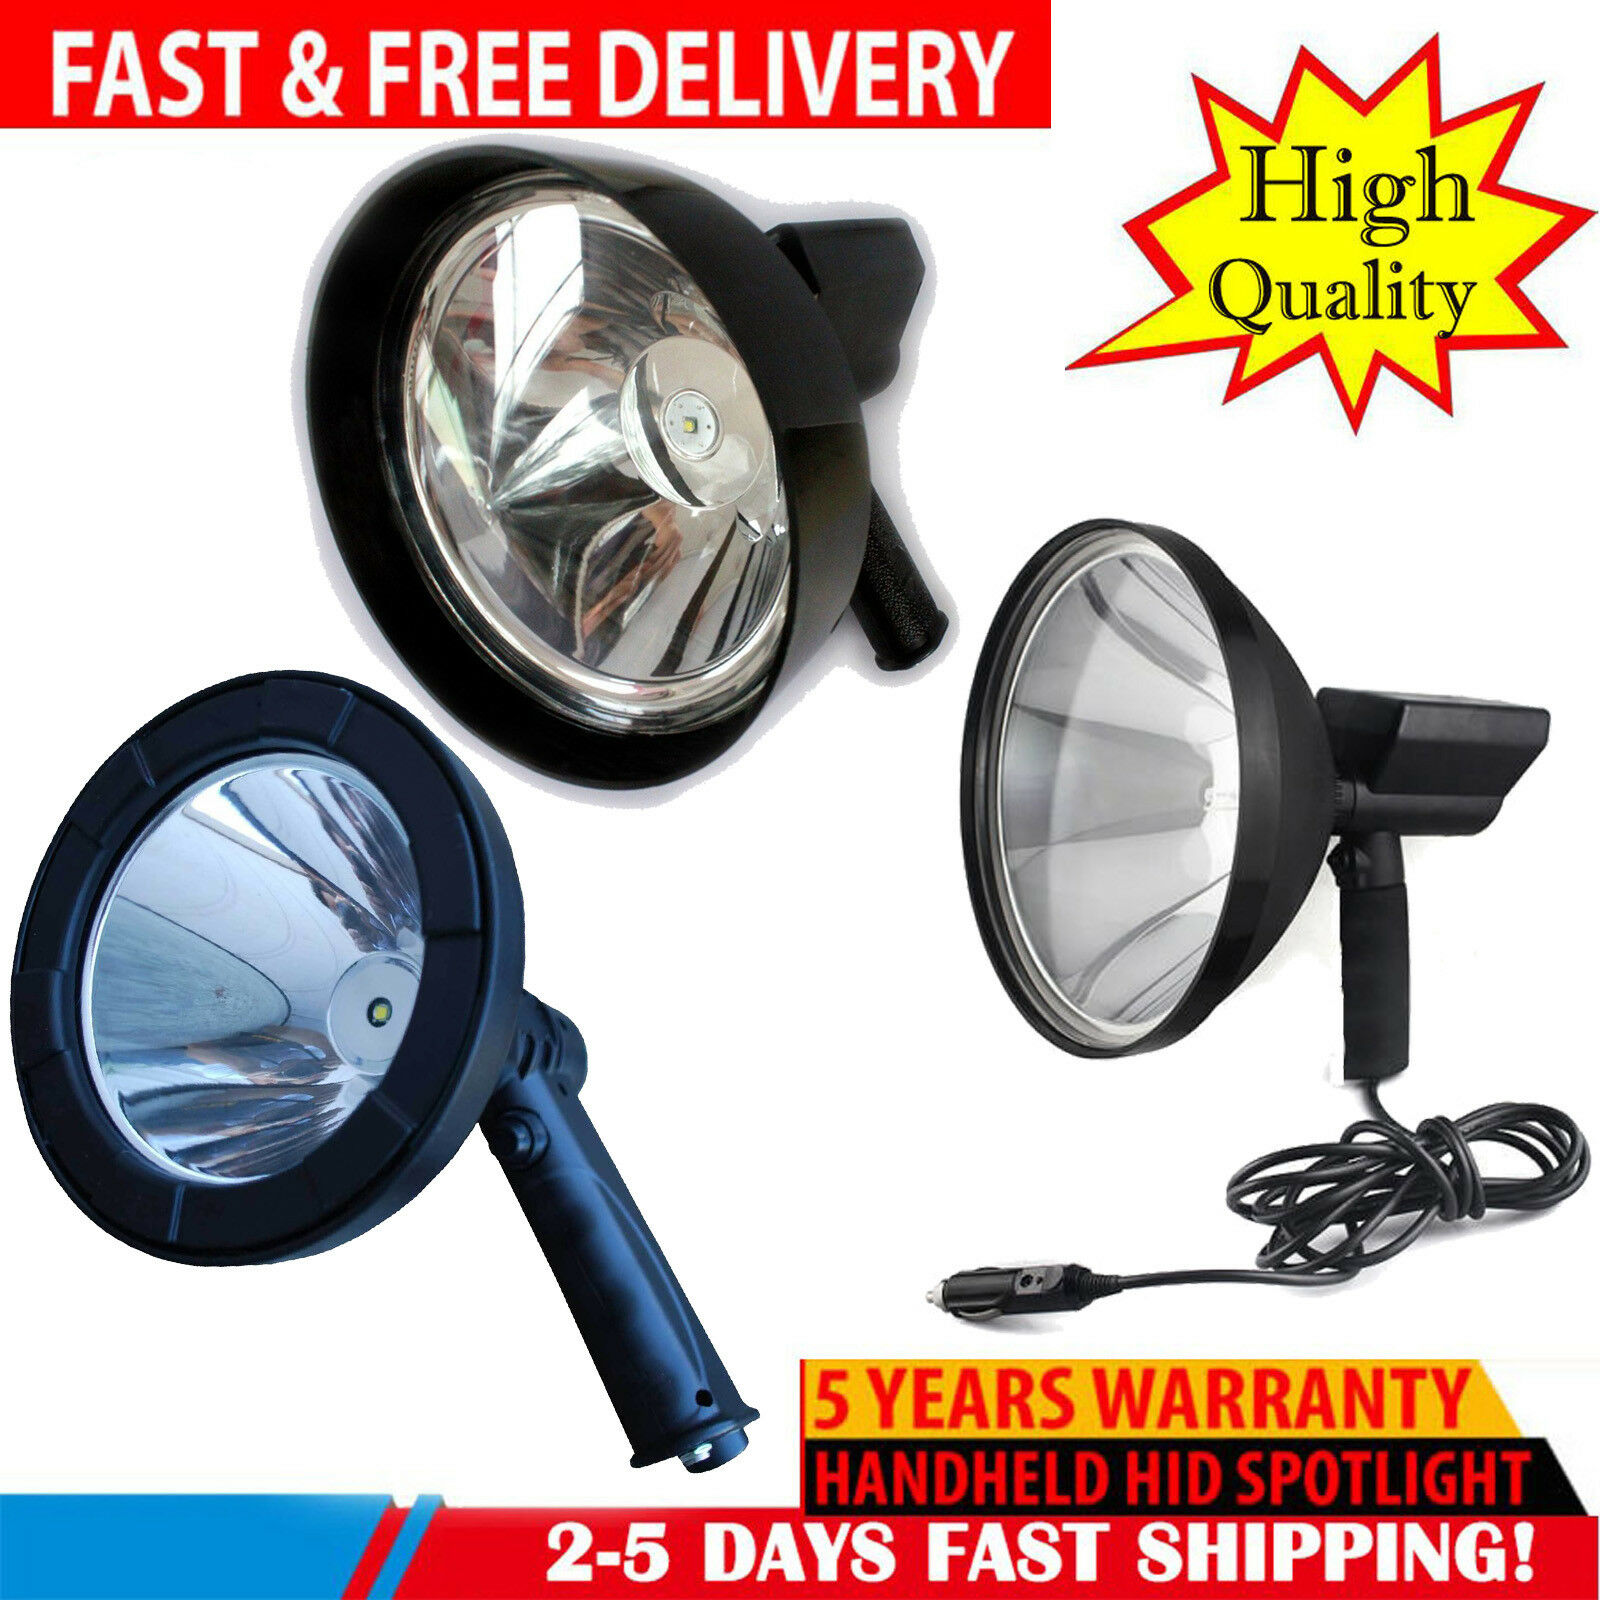 660W LED Spotlight Handheld Spot Light Waterproof Hunting Shooting Lamp T6 12V